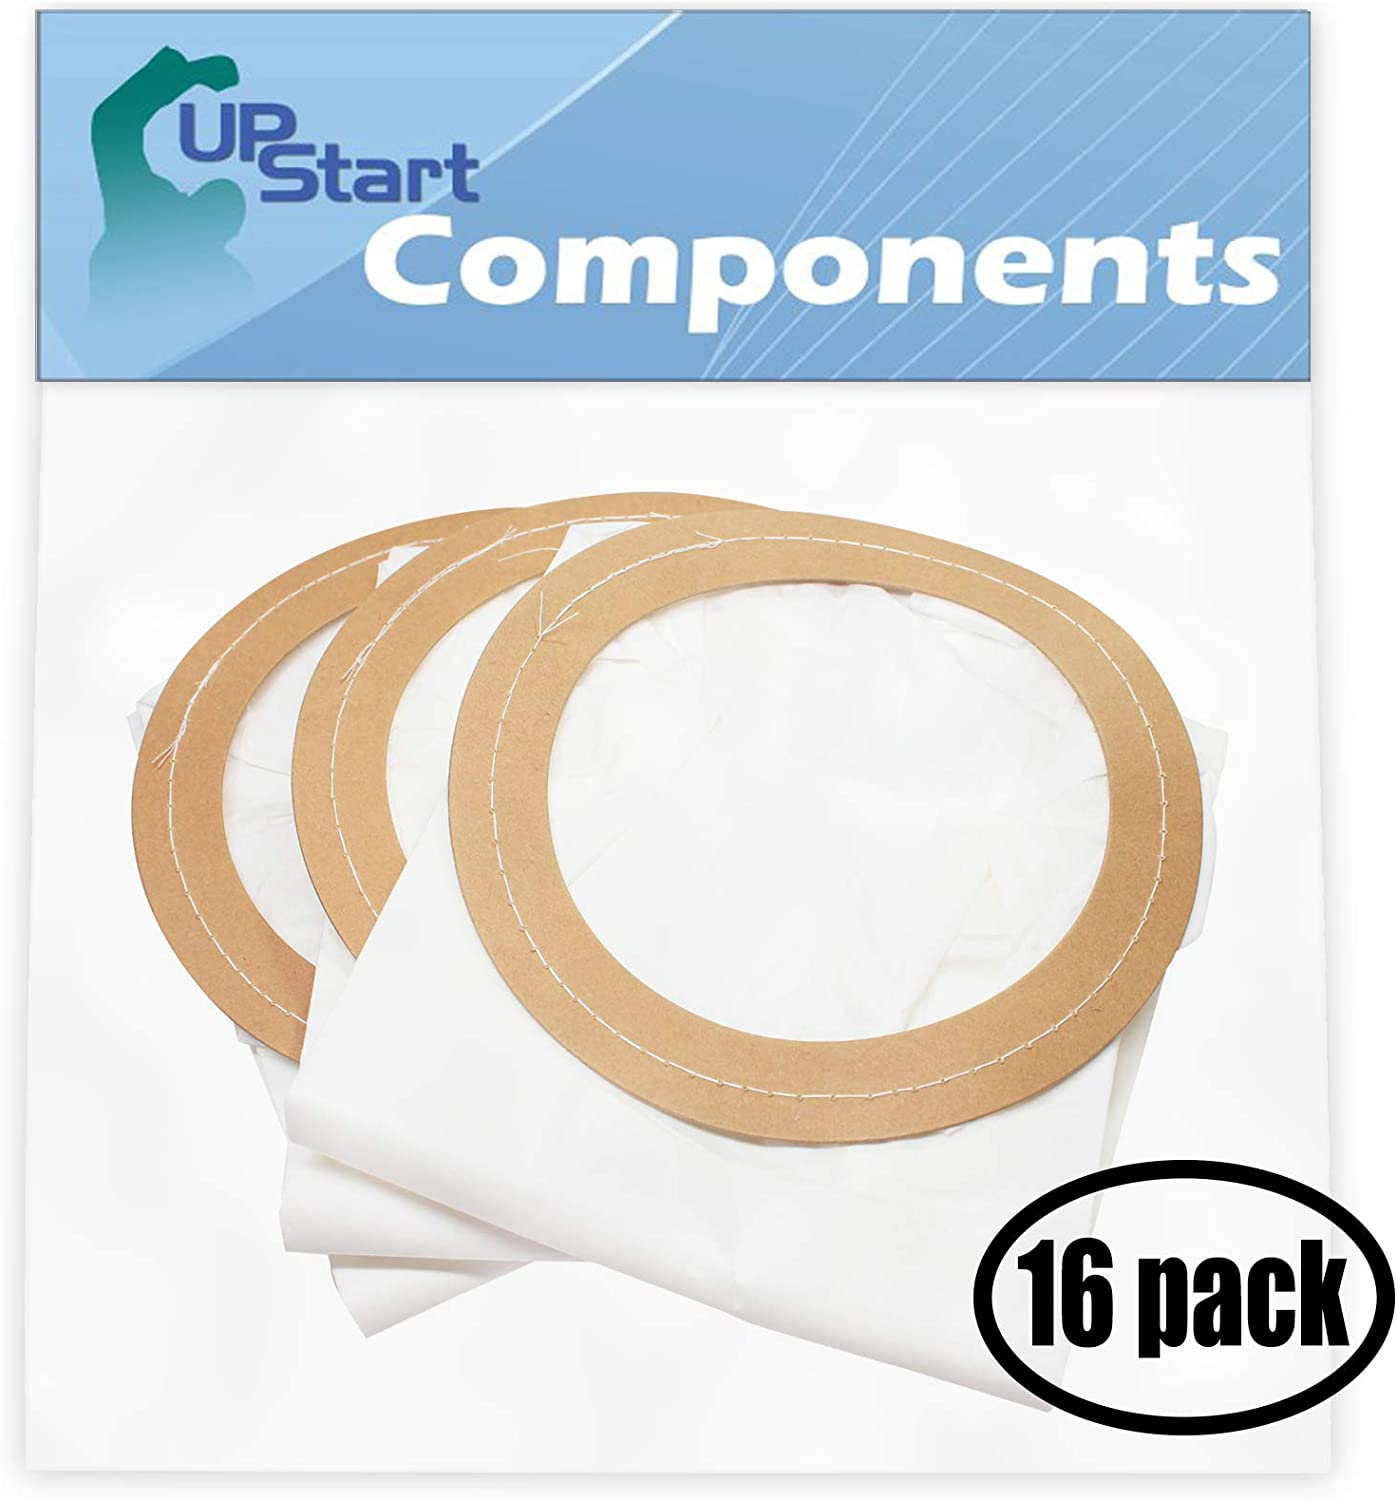 48 Replacement 10 Quart Backpack Vacuum Bags 100331 with 1 Micro Vacuum Attachment Kit for ProTeam - Compatible with ProTeam Super CoachVac, ProTeam 100331, ProTeam MegaVac, ProTeam CoachVac, ProTeam Super CoachVac HEPA, ProTeam Linevacer, ProTeam LineVacer, Perfect PB1001, ProTeam 10 Quart, ProTeam Aggressor II